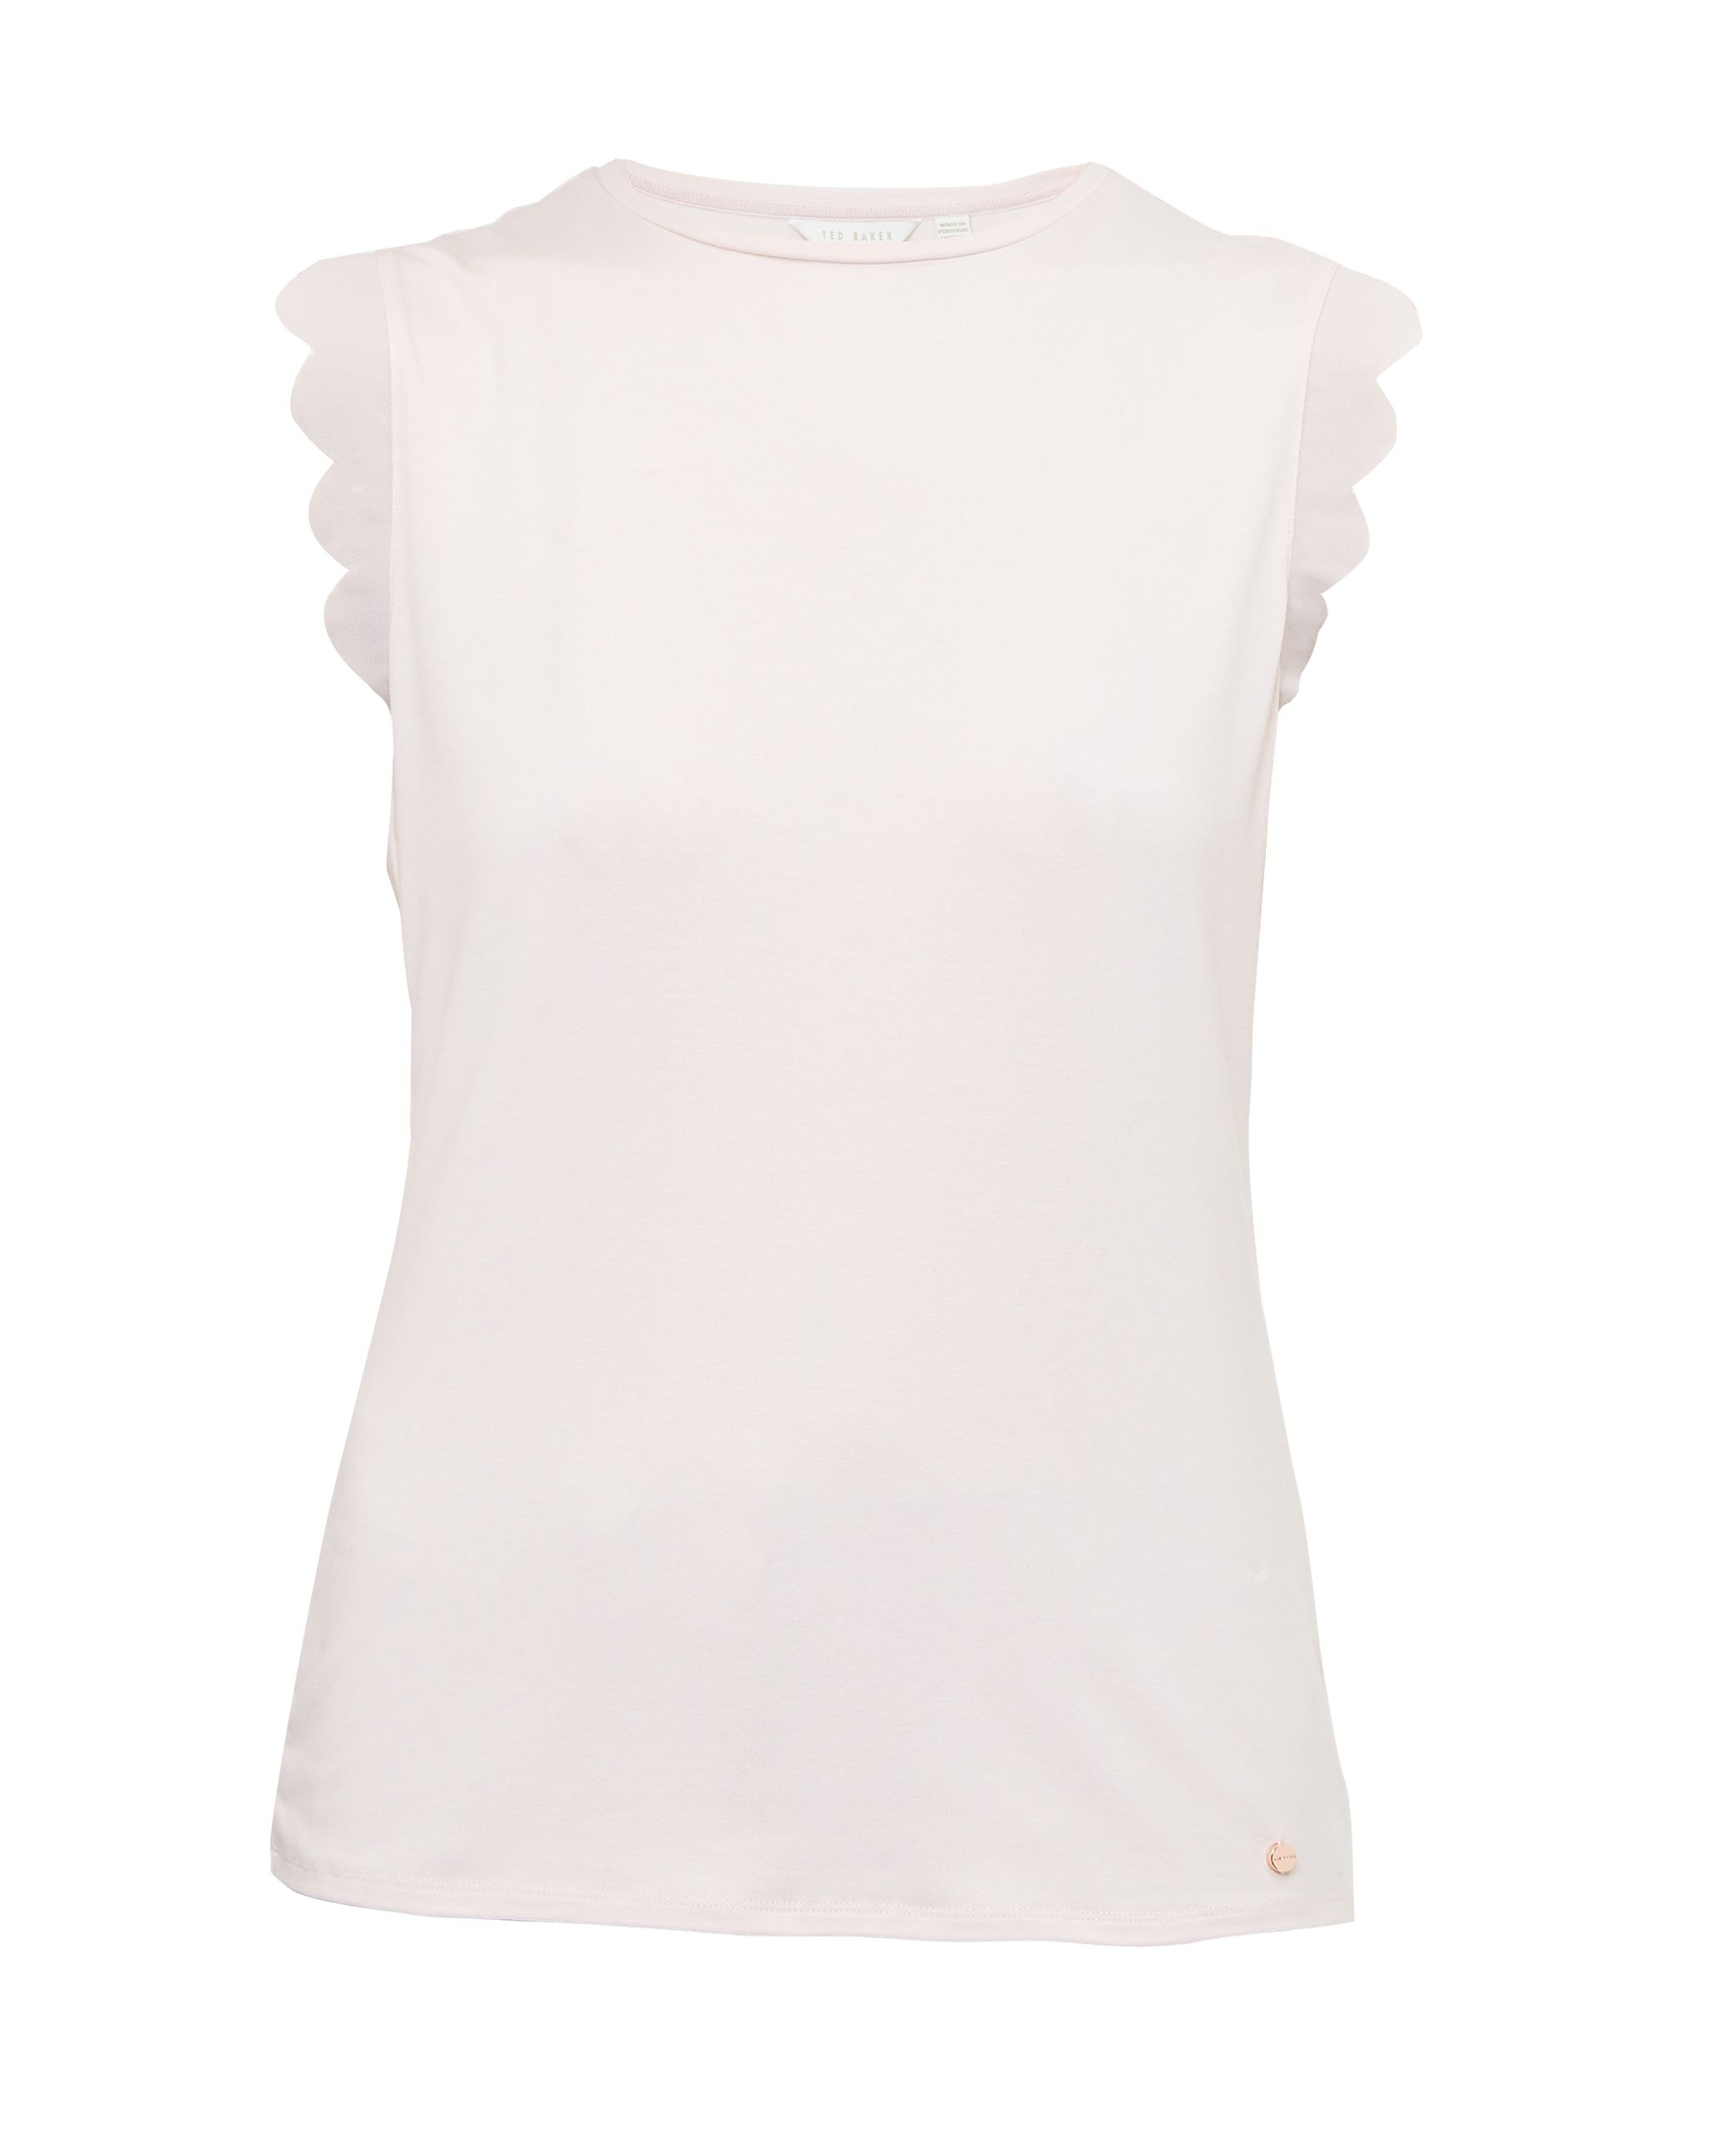 Ted Baker Elliah Scallop Detail Fitted T-Shirt, Pastel Pink